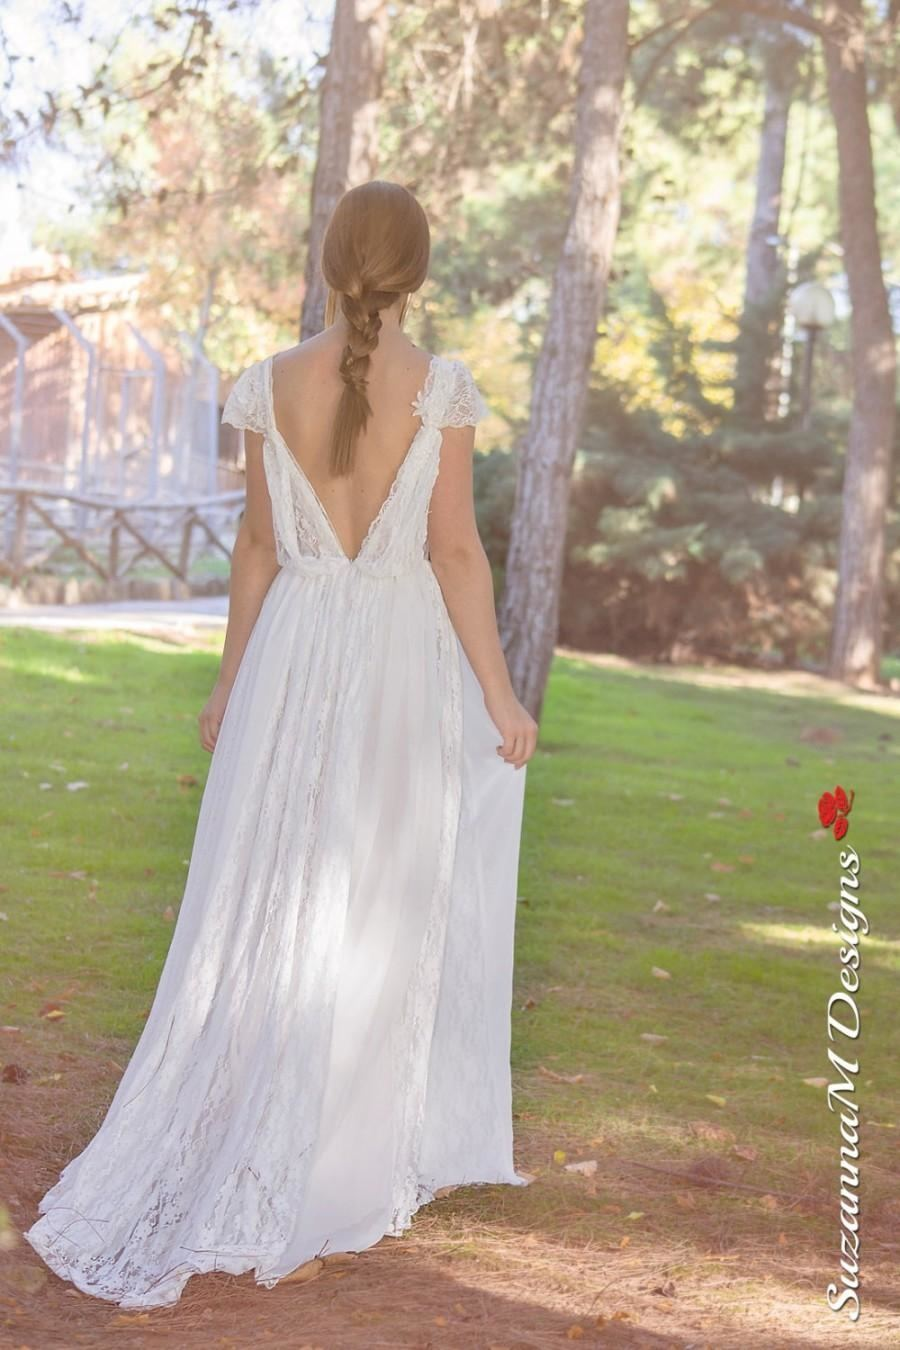 Discount Charming Lussano Beach Bohemian Wedding Dresses Off Shoulder Tulle  Lace Up Boho Bridal Gowns Tulle Sweep Train Wedding Dress Custom A Line  Dress